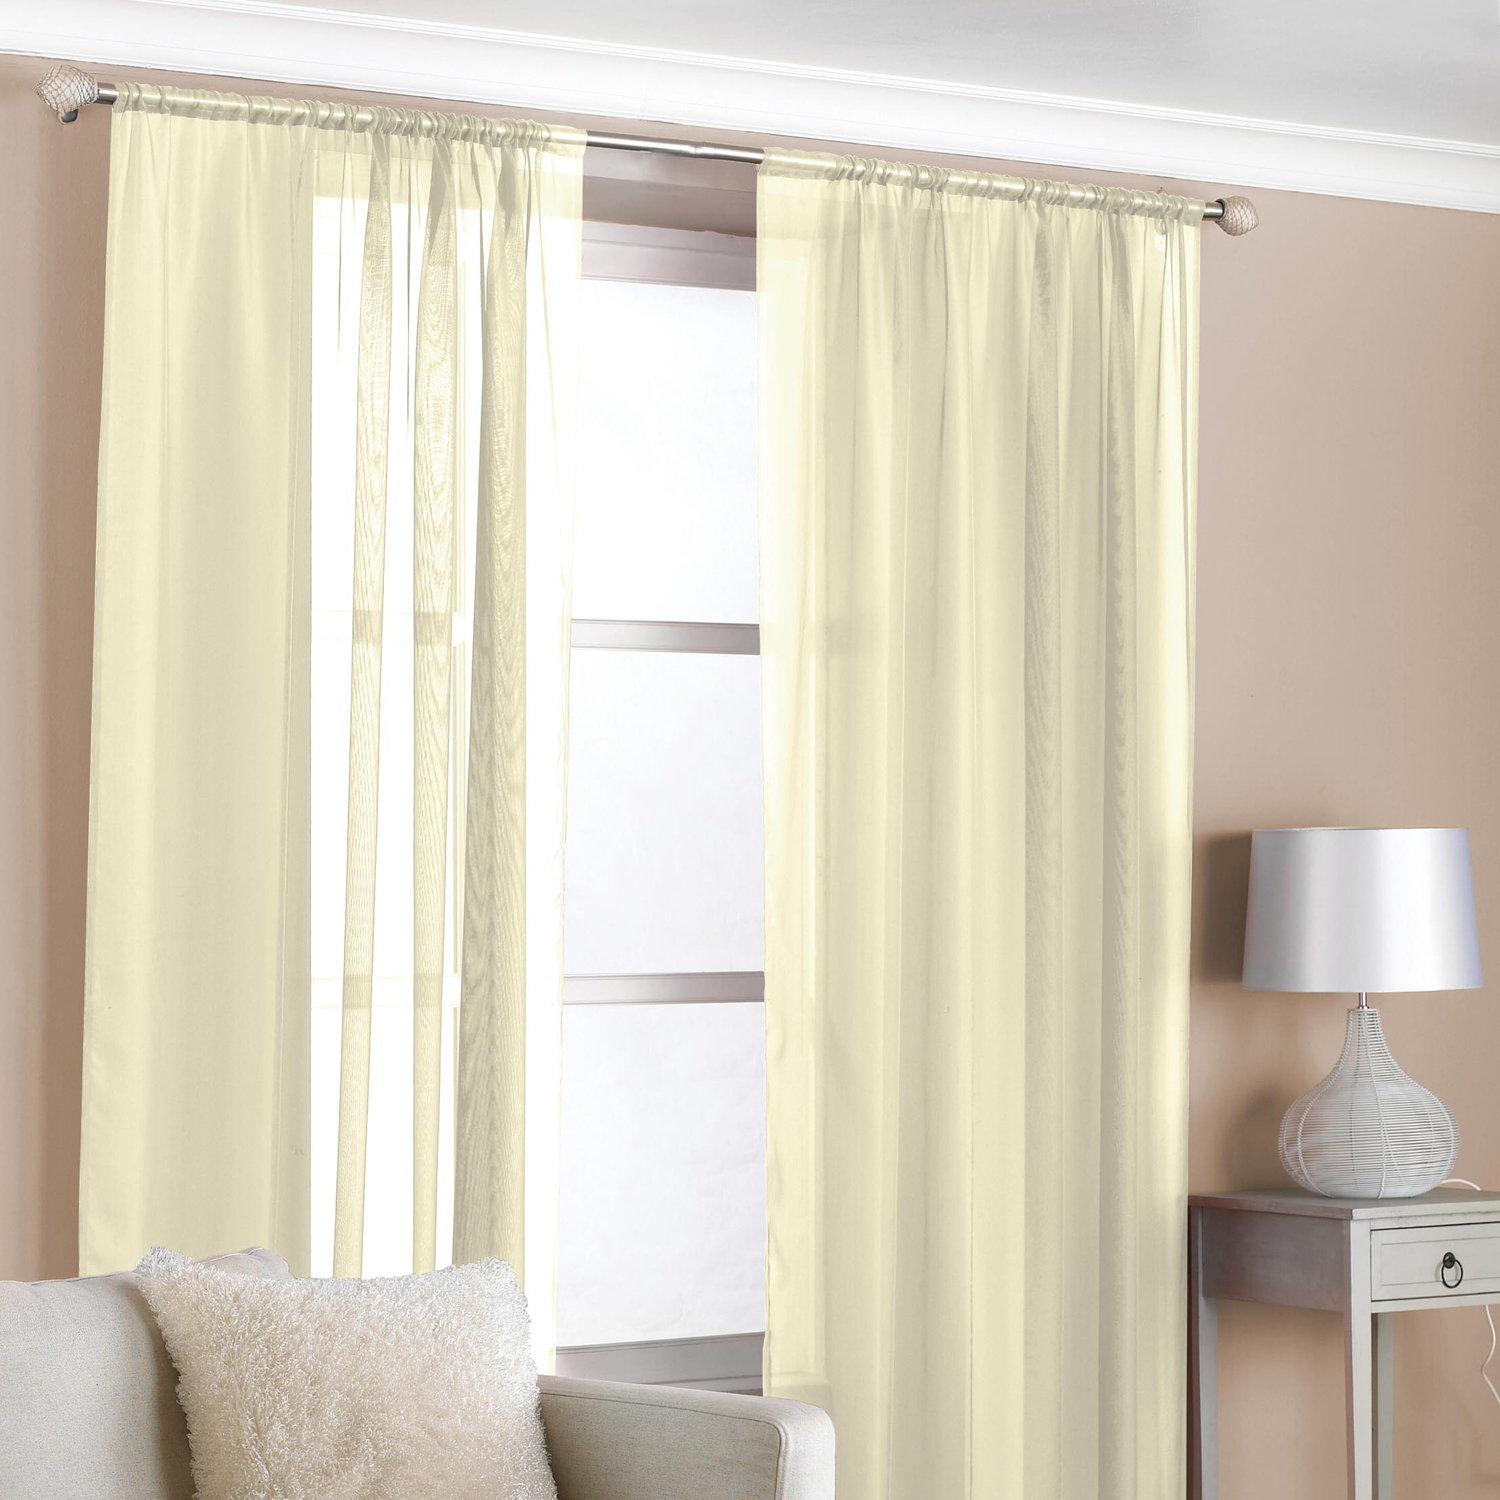 net voile ivory panel curtains direct chantilly from